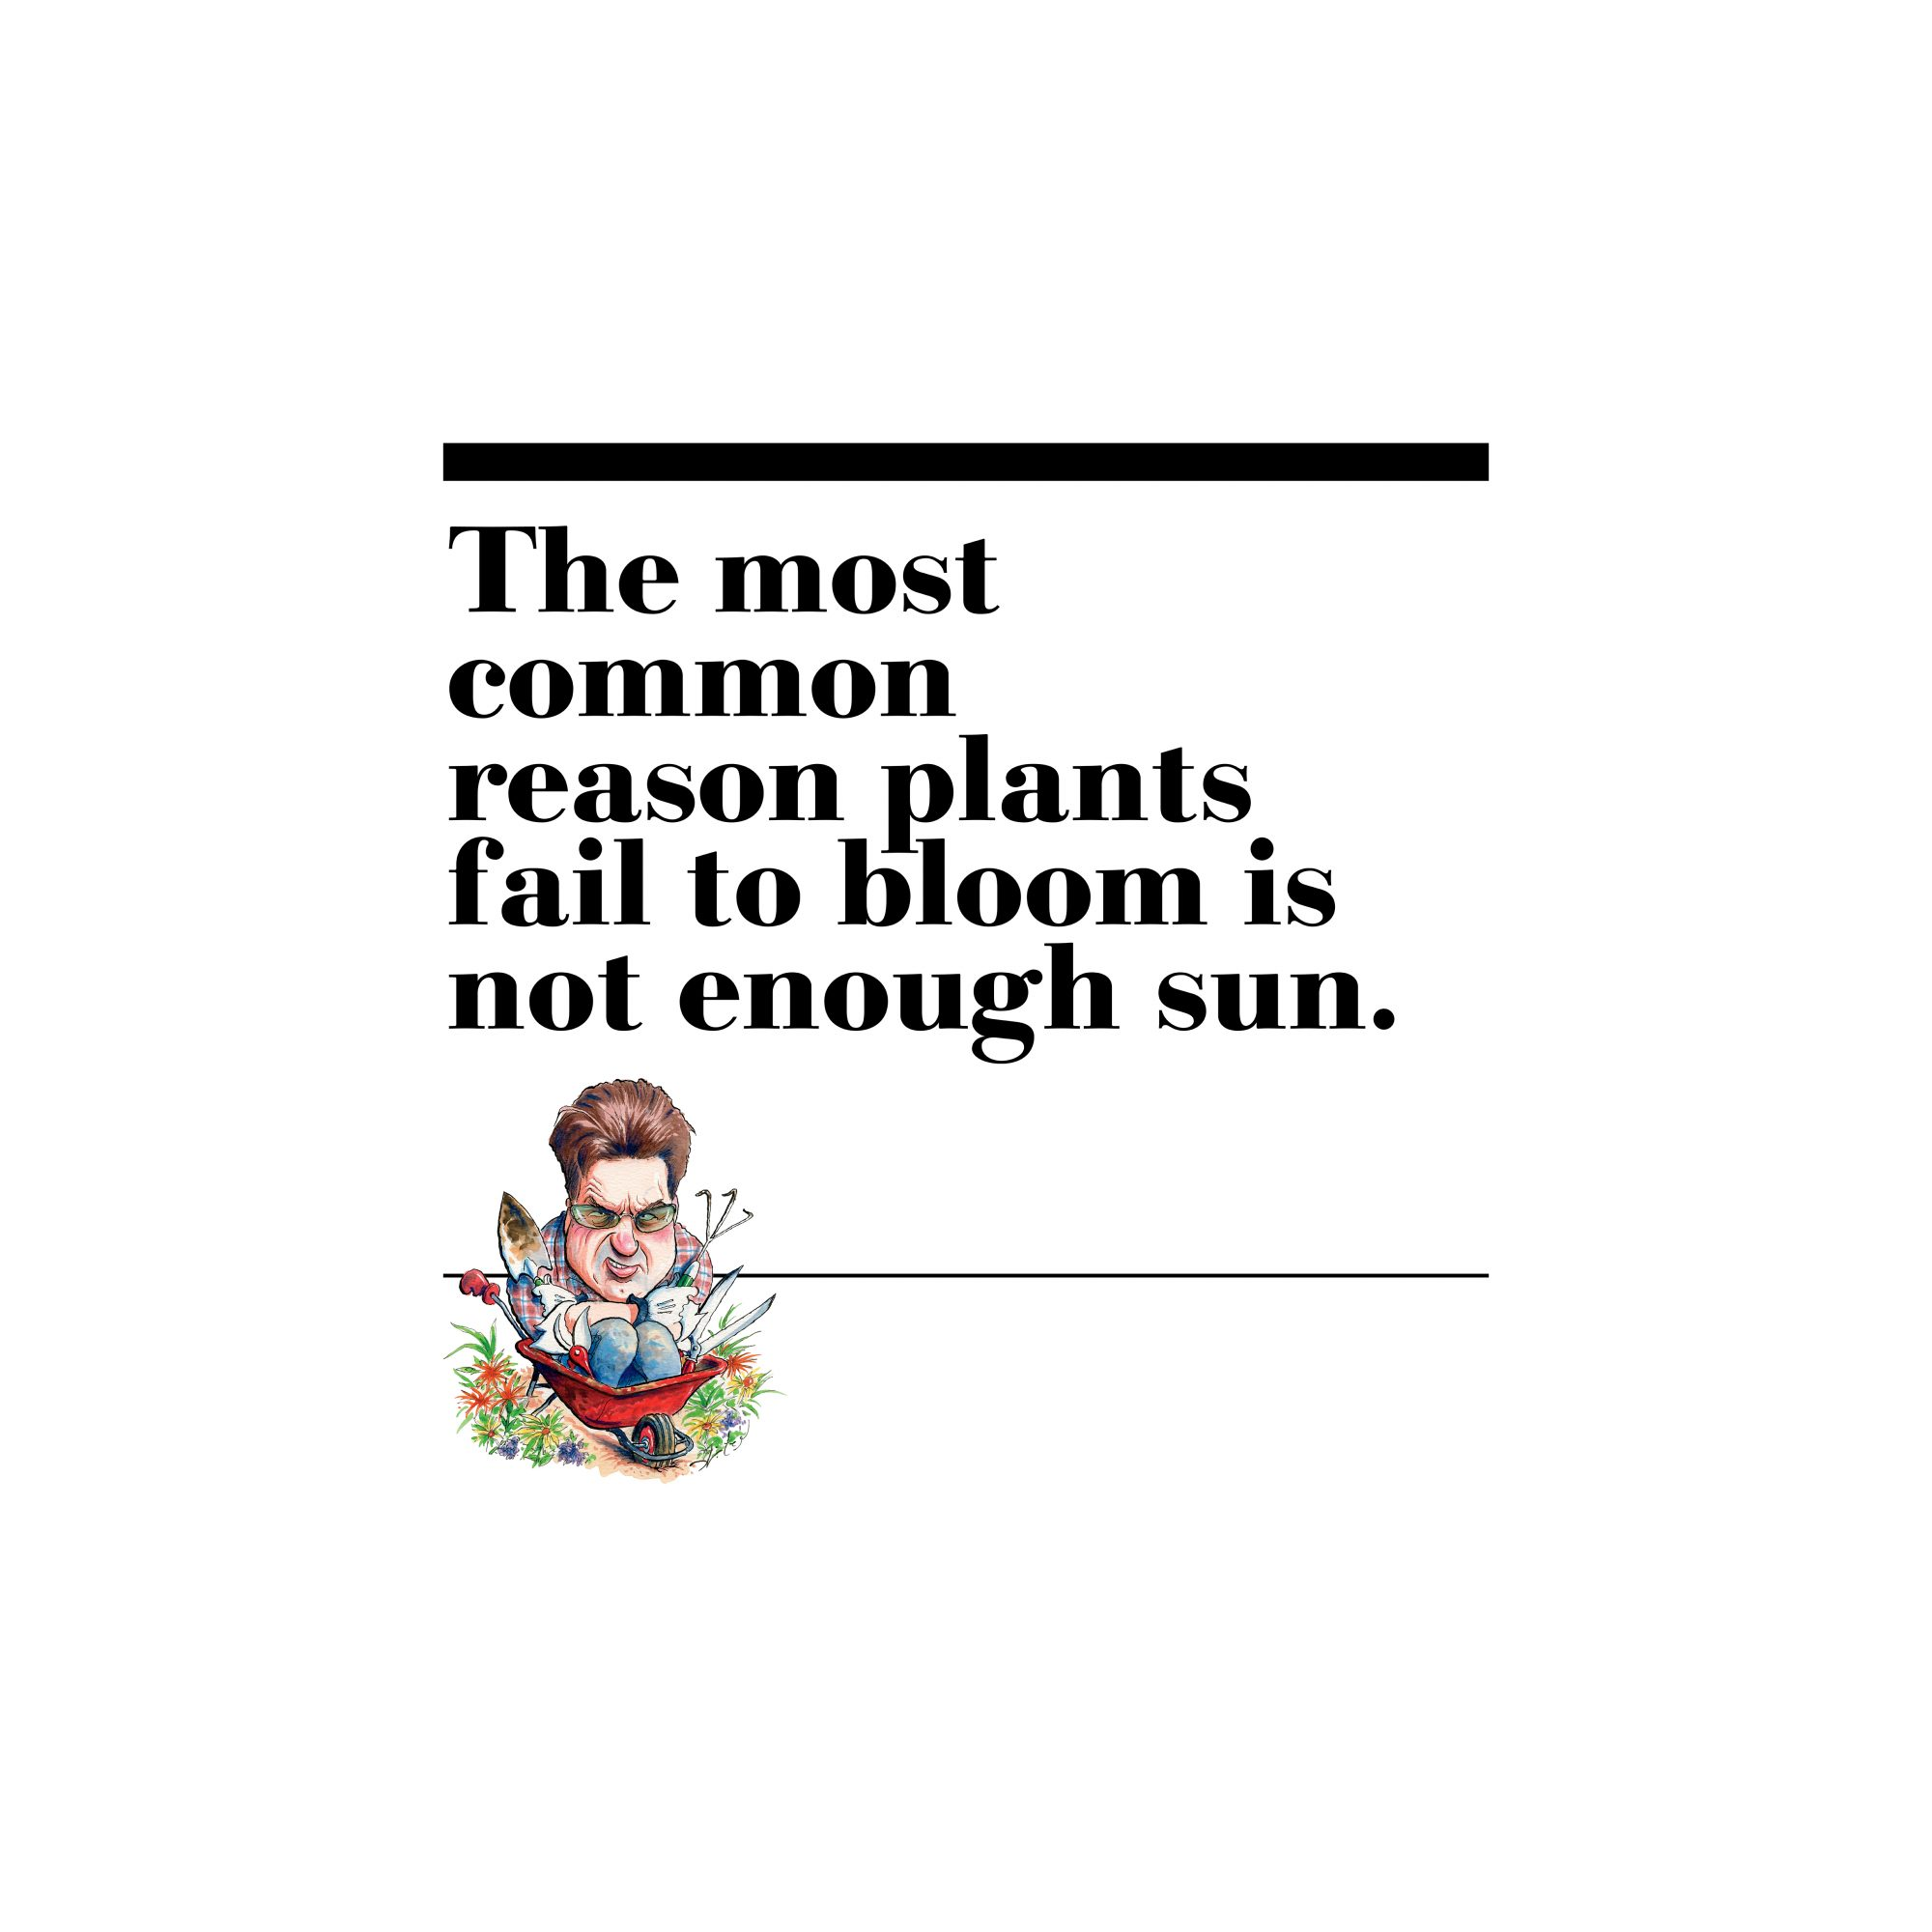 10. The most common reason plants fail to bloom is not enough sun.